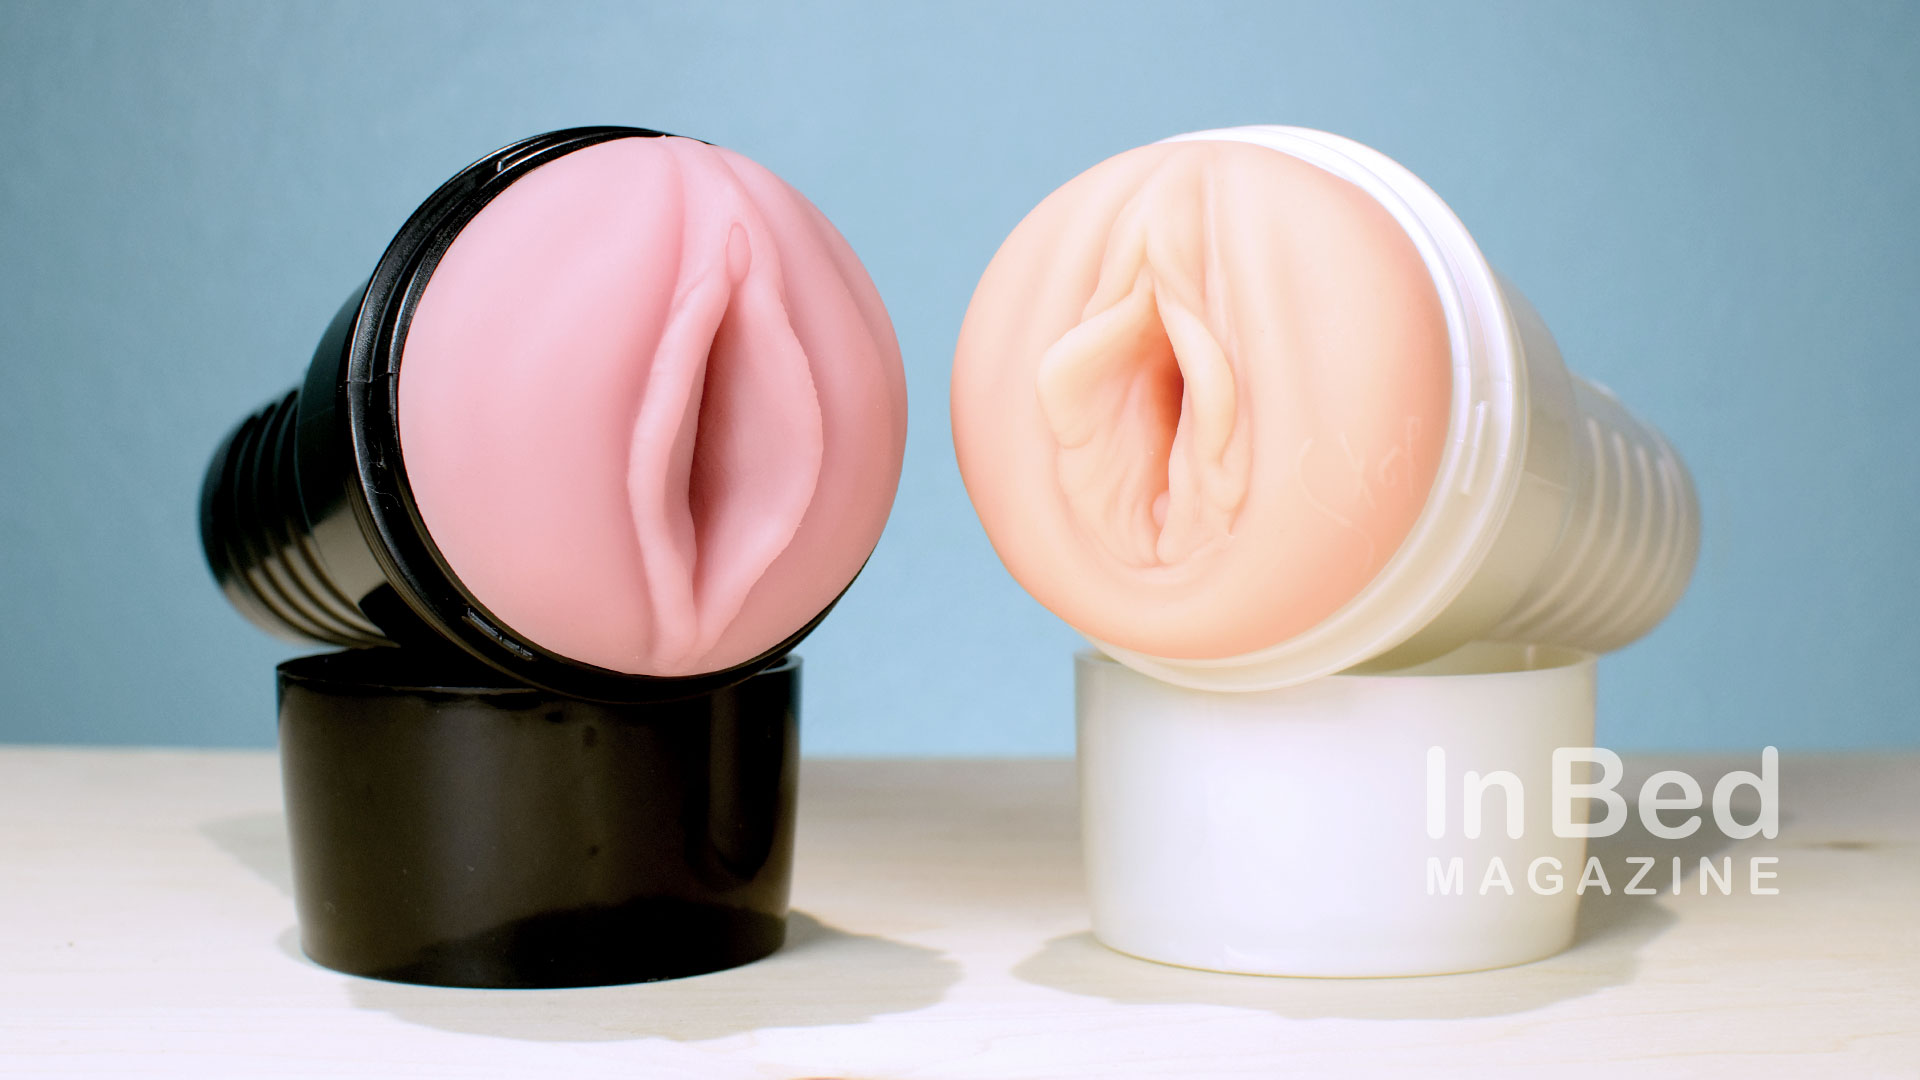 Fleshlight Male Pleasure Products For Under 300